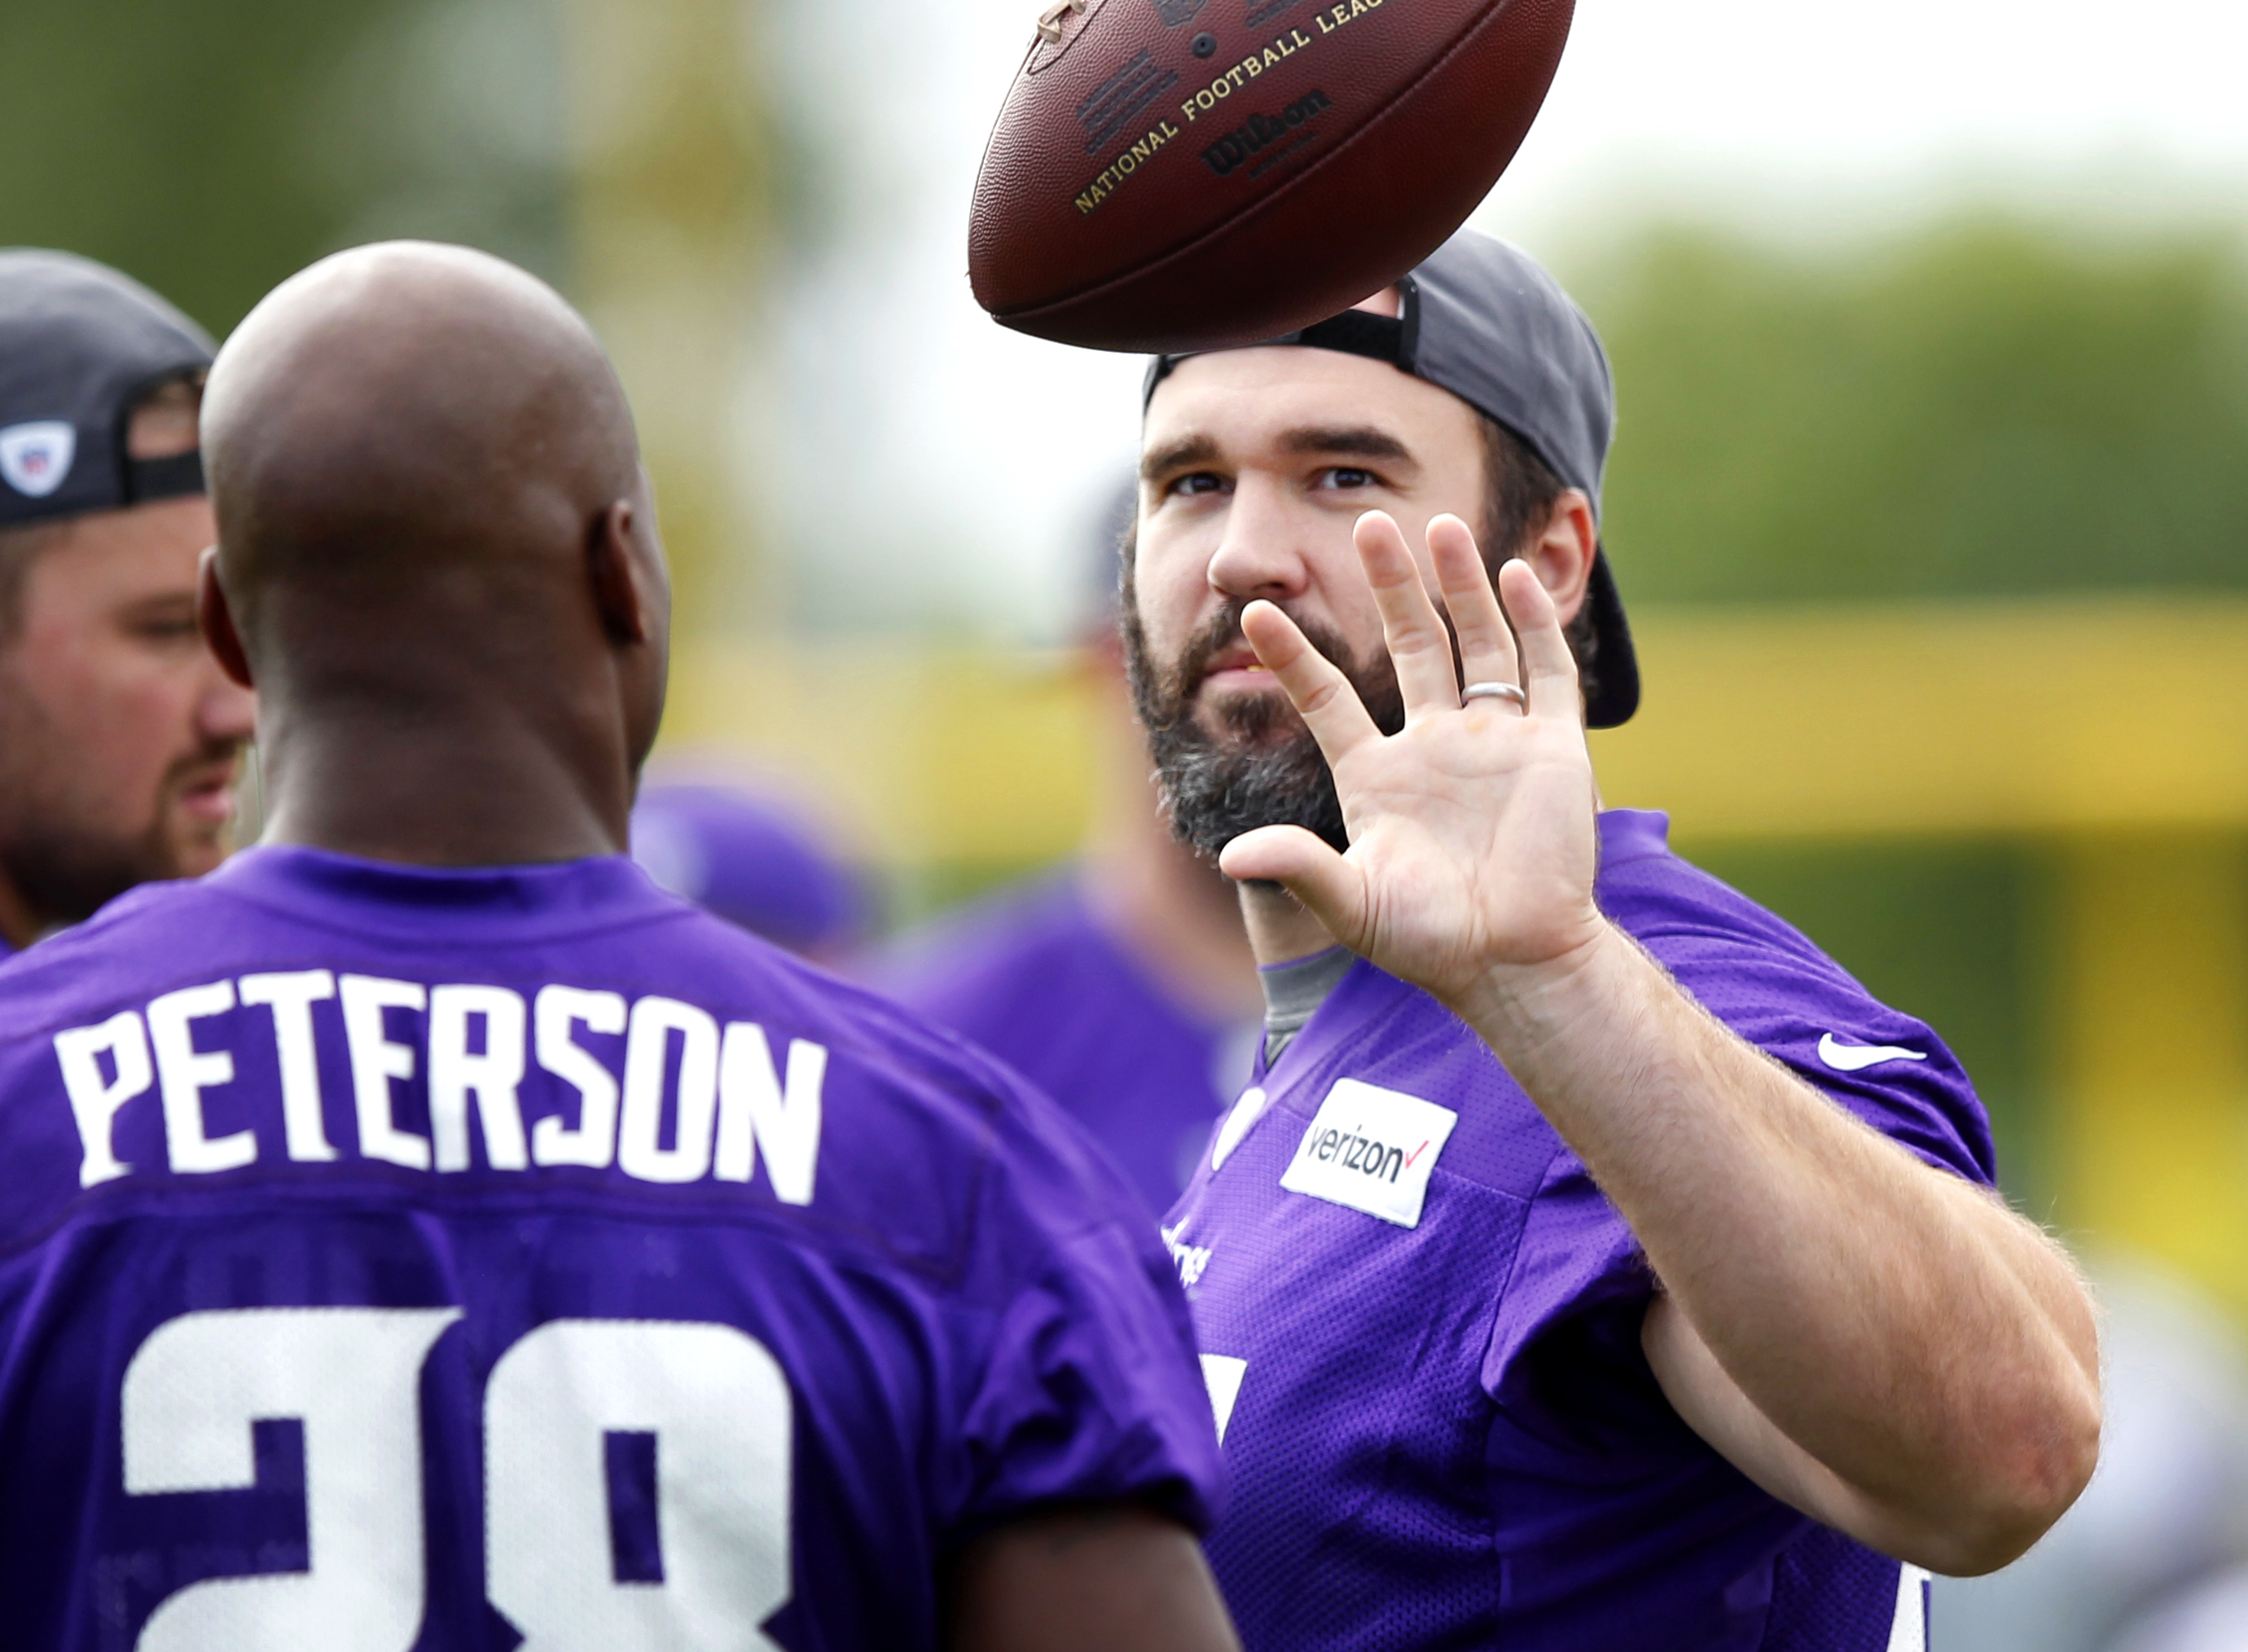 Minnesota Vikings center John Sullivan (65) catches the ball tossed by running back Adrian Peterson (28) during the first day of NFL football training camp at Mankato State University in Mankato, Minn. on Friday, July, 29, 2016.(AP Photo/Andy Clayton-King